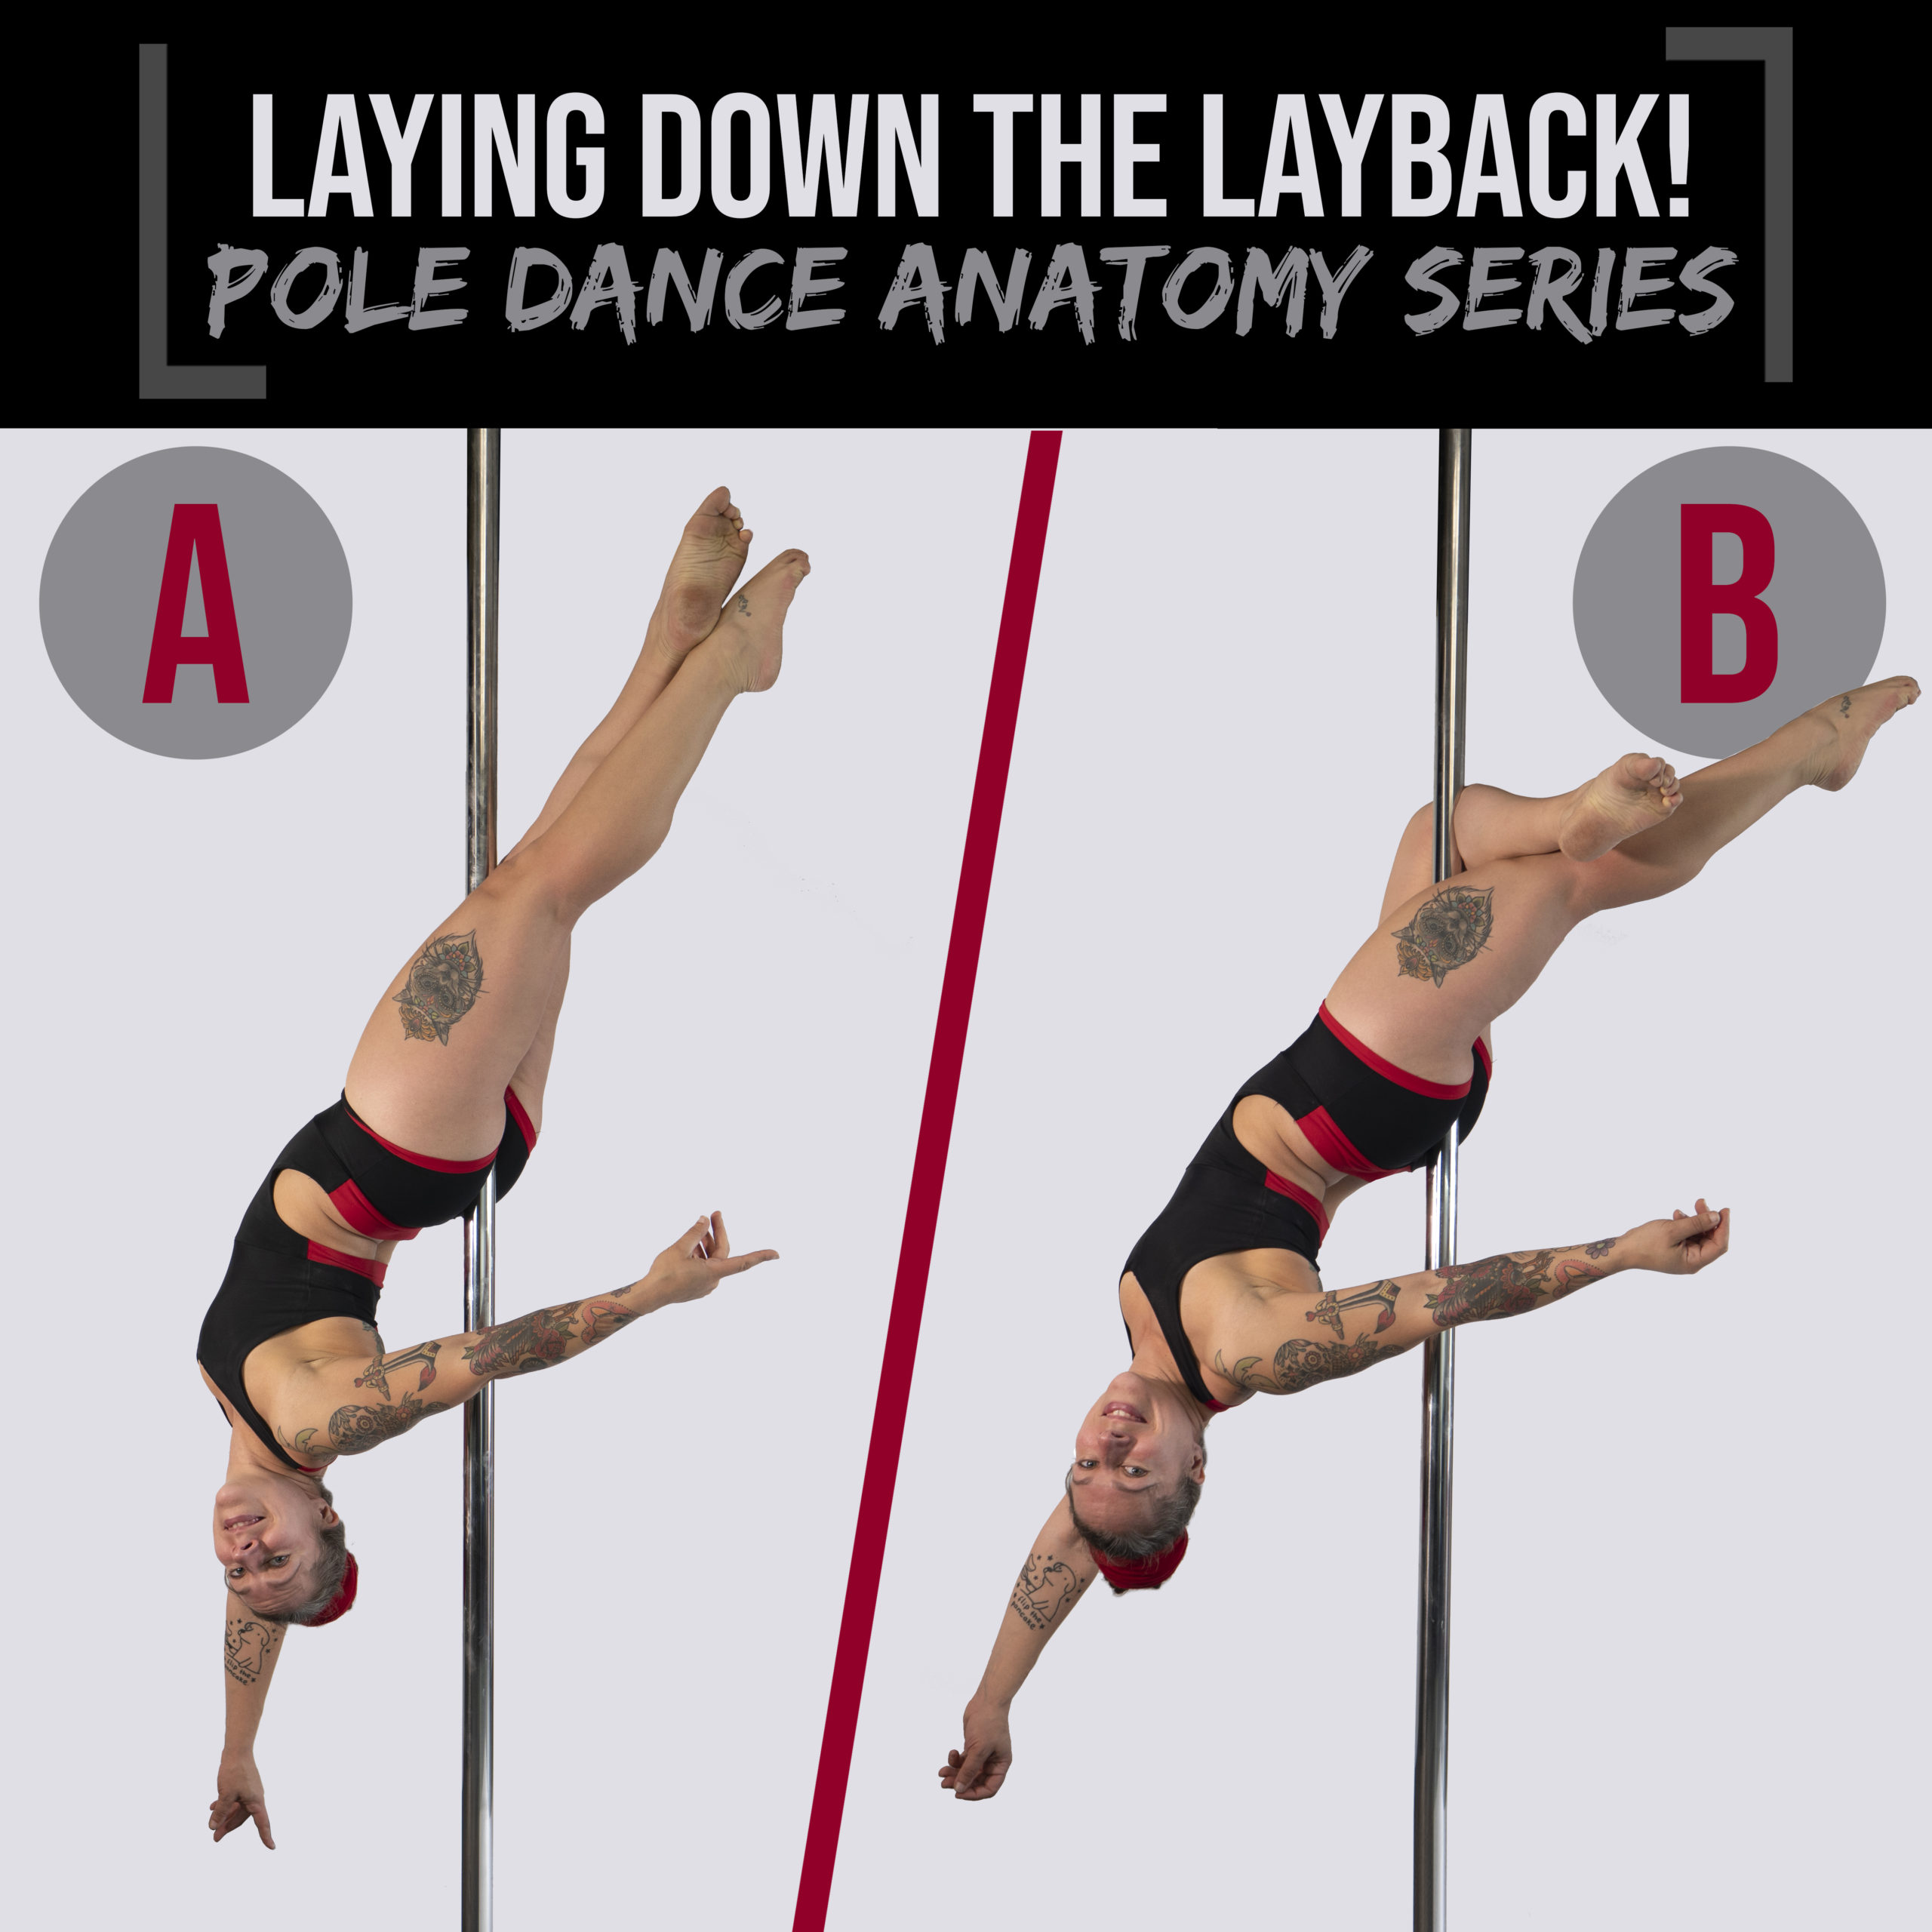 Laying down the layback